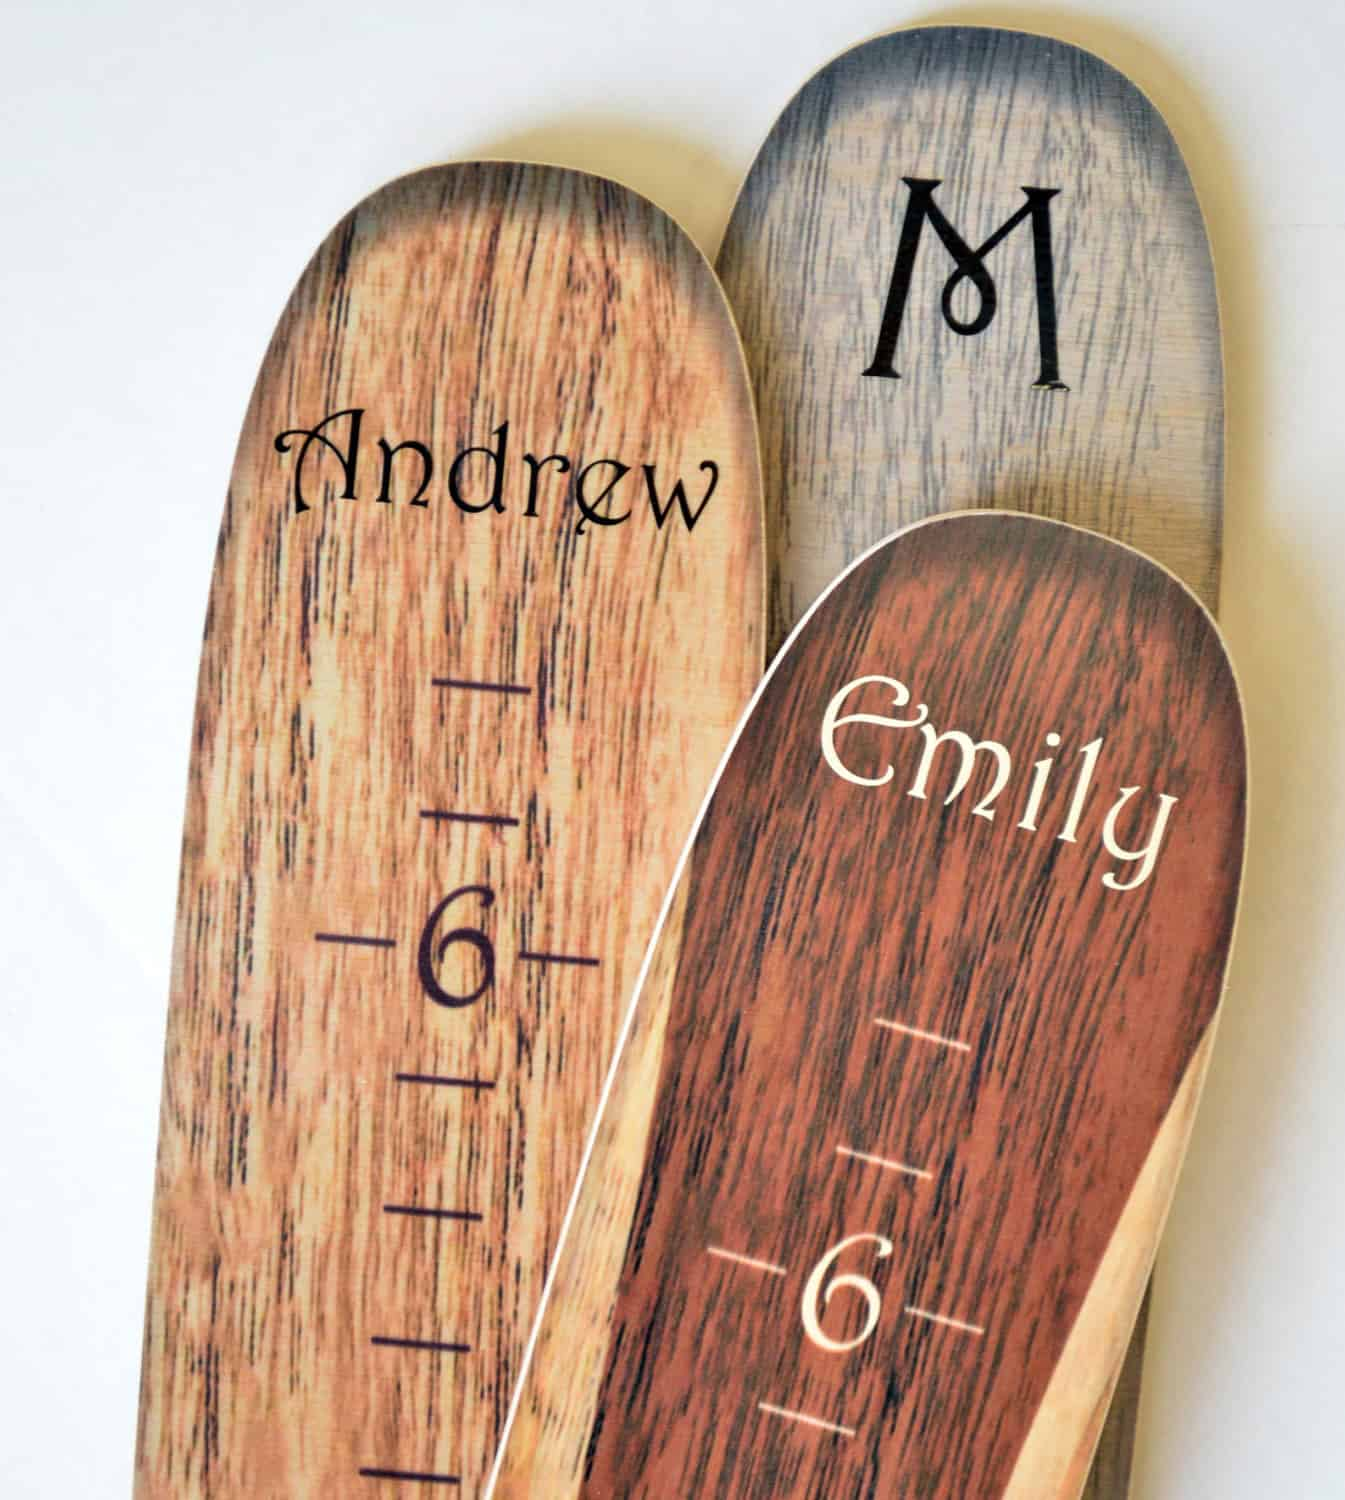 Growth chart art wooden ski growth chart noveltystreet you can also request your childs name to be printed on top for free upon order to make it more personalized an ideal baby shower and house warming gift nvjuhfo Choice Image